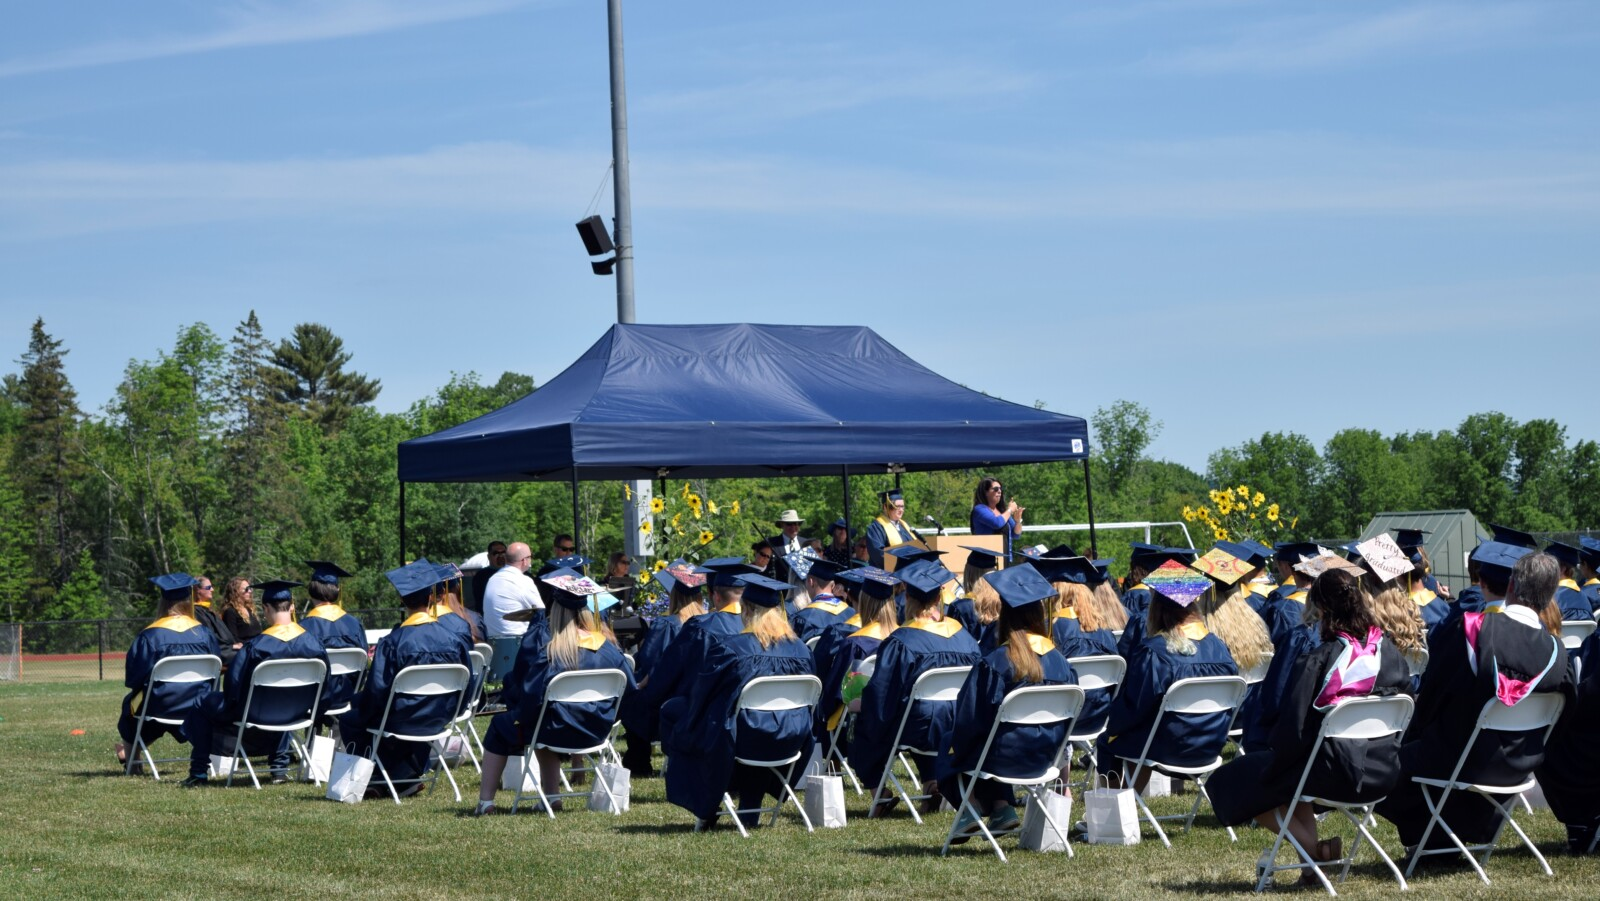 In the foreground, high school graduates sit in blue robes and caps. Some of the caps are decorated with phrases, LGBTQ rainbow-flag colors, and personal pictures. In the background, a student in a robe and cap stands on stage speaking into a microphone. Next to the student is an ASL interpreter.